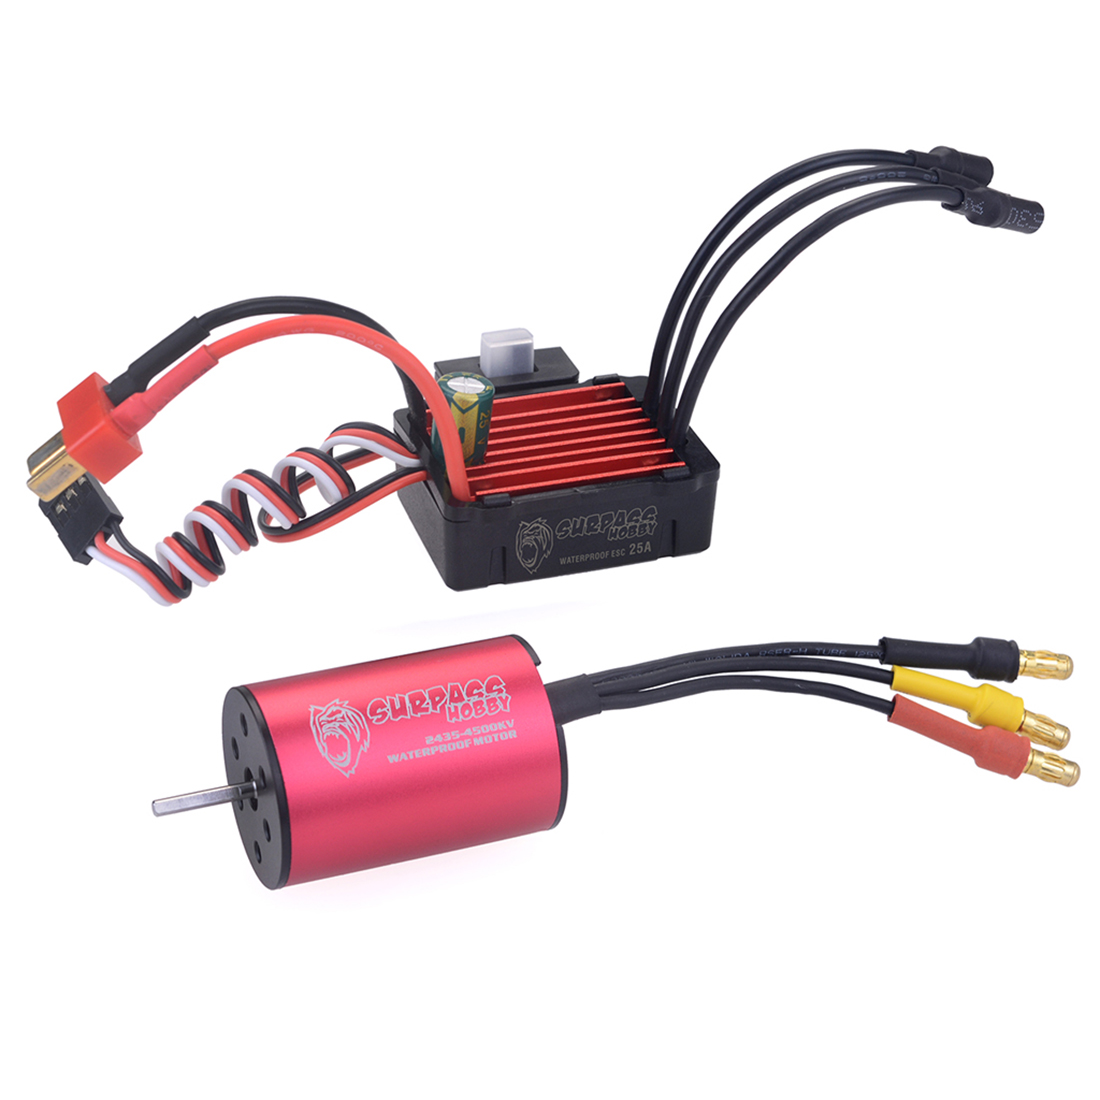 2435 4500KV Waterproof Sensorless Brushless Motor with <font><b>25A</b></font> <font><b>ESC</b></font> for 1:16 / 1:18 RC Model Car - Black Red image